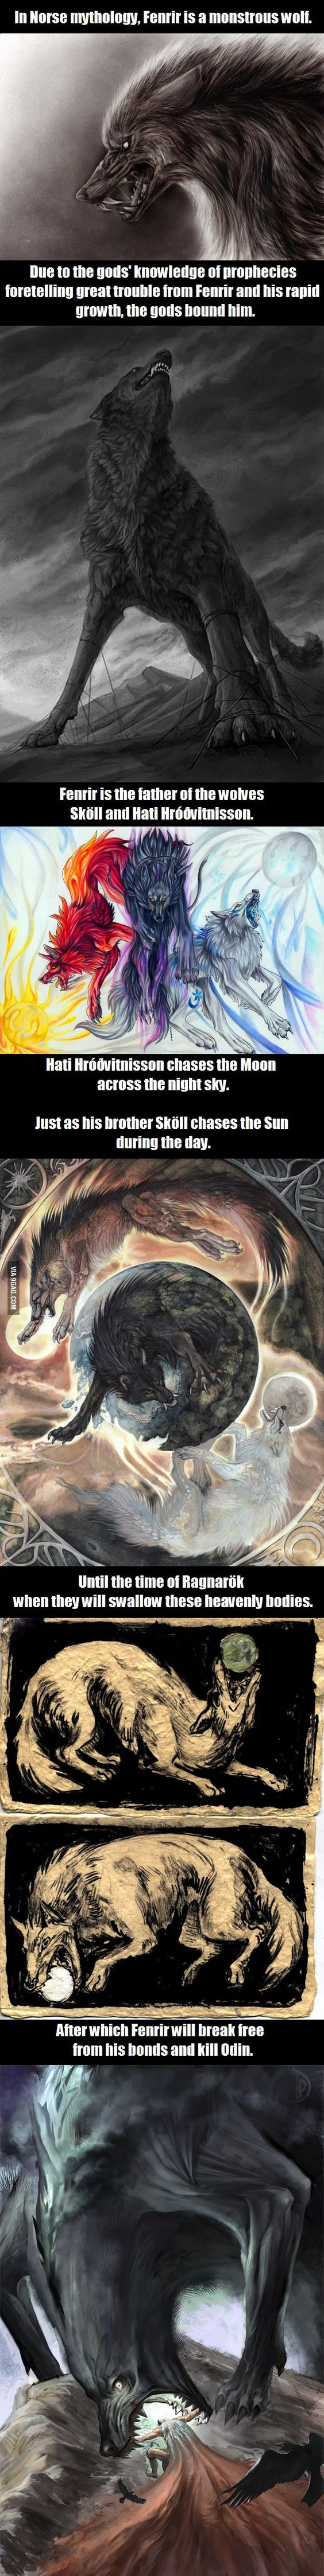 i heard you guys like dragons what about mythical wolves nice